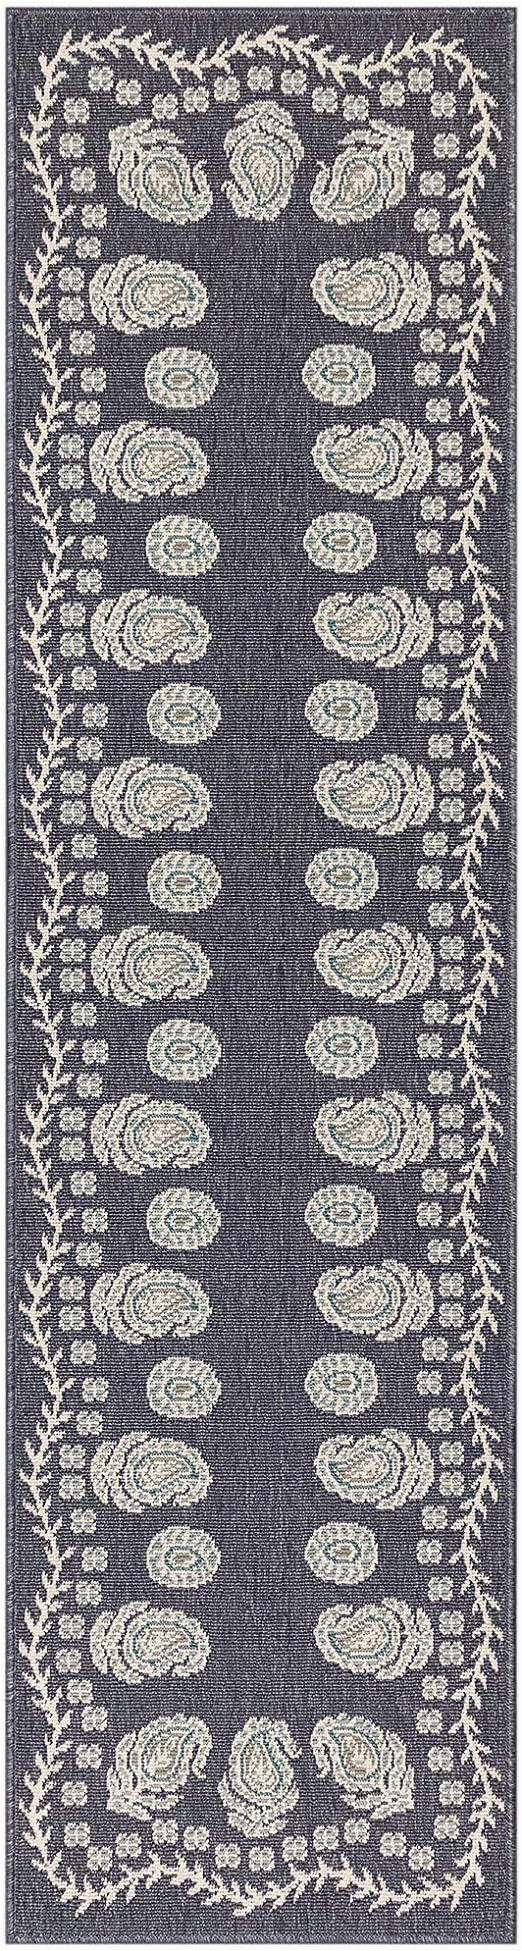 "Riviera Home Retro Bath Rug Liora Manne Riviera Tashi Indoor Outdoor Runner Rug Navy 23"" X 7 6"""